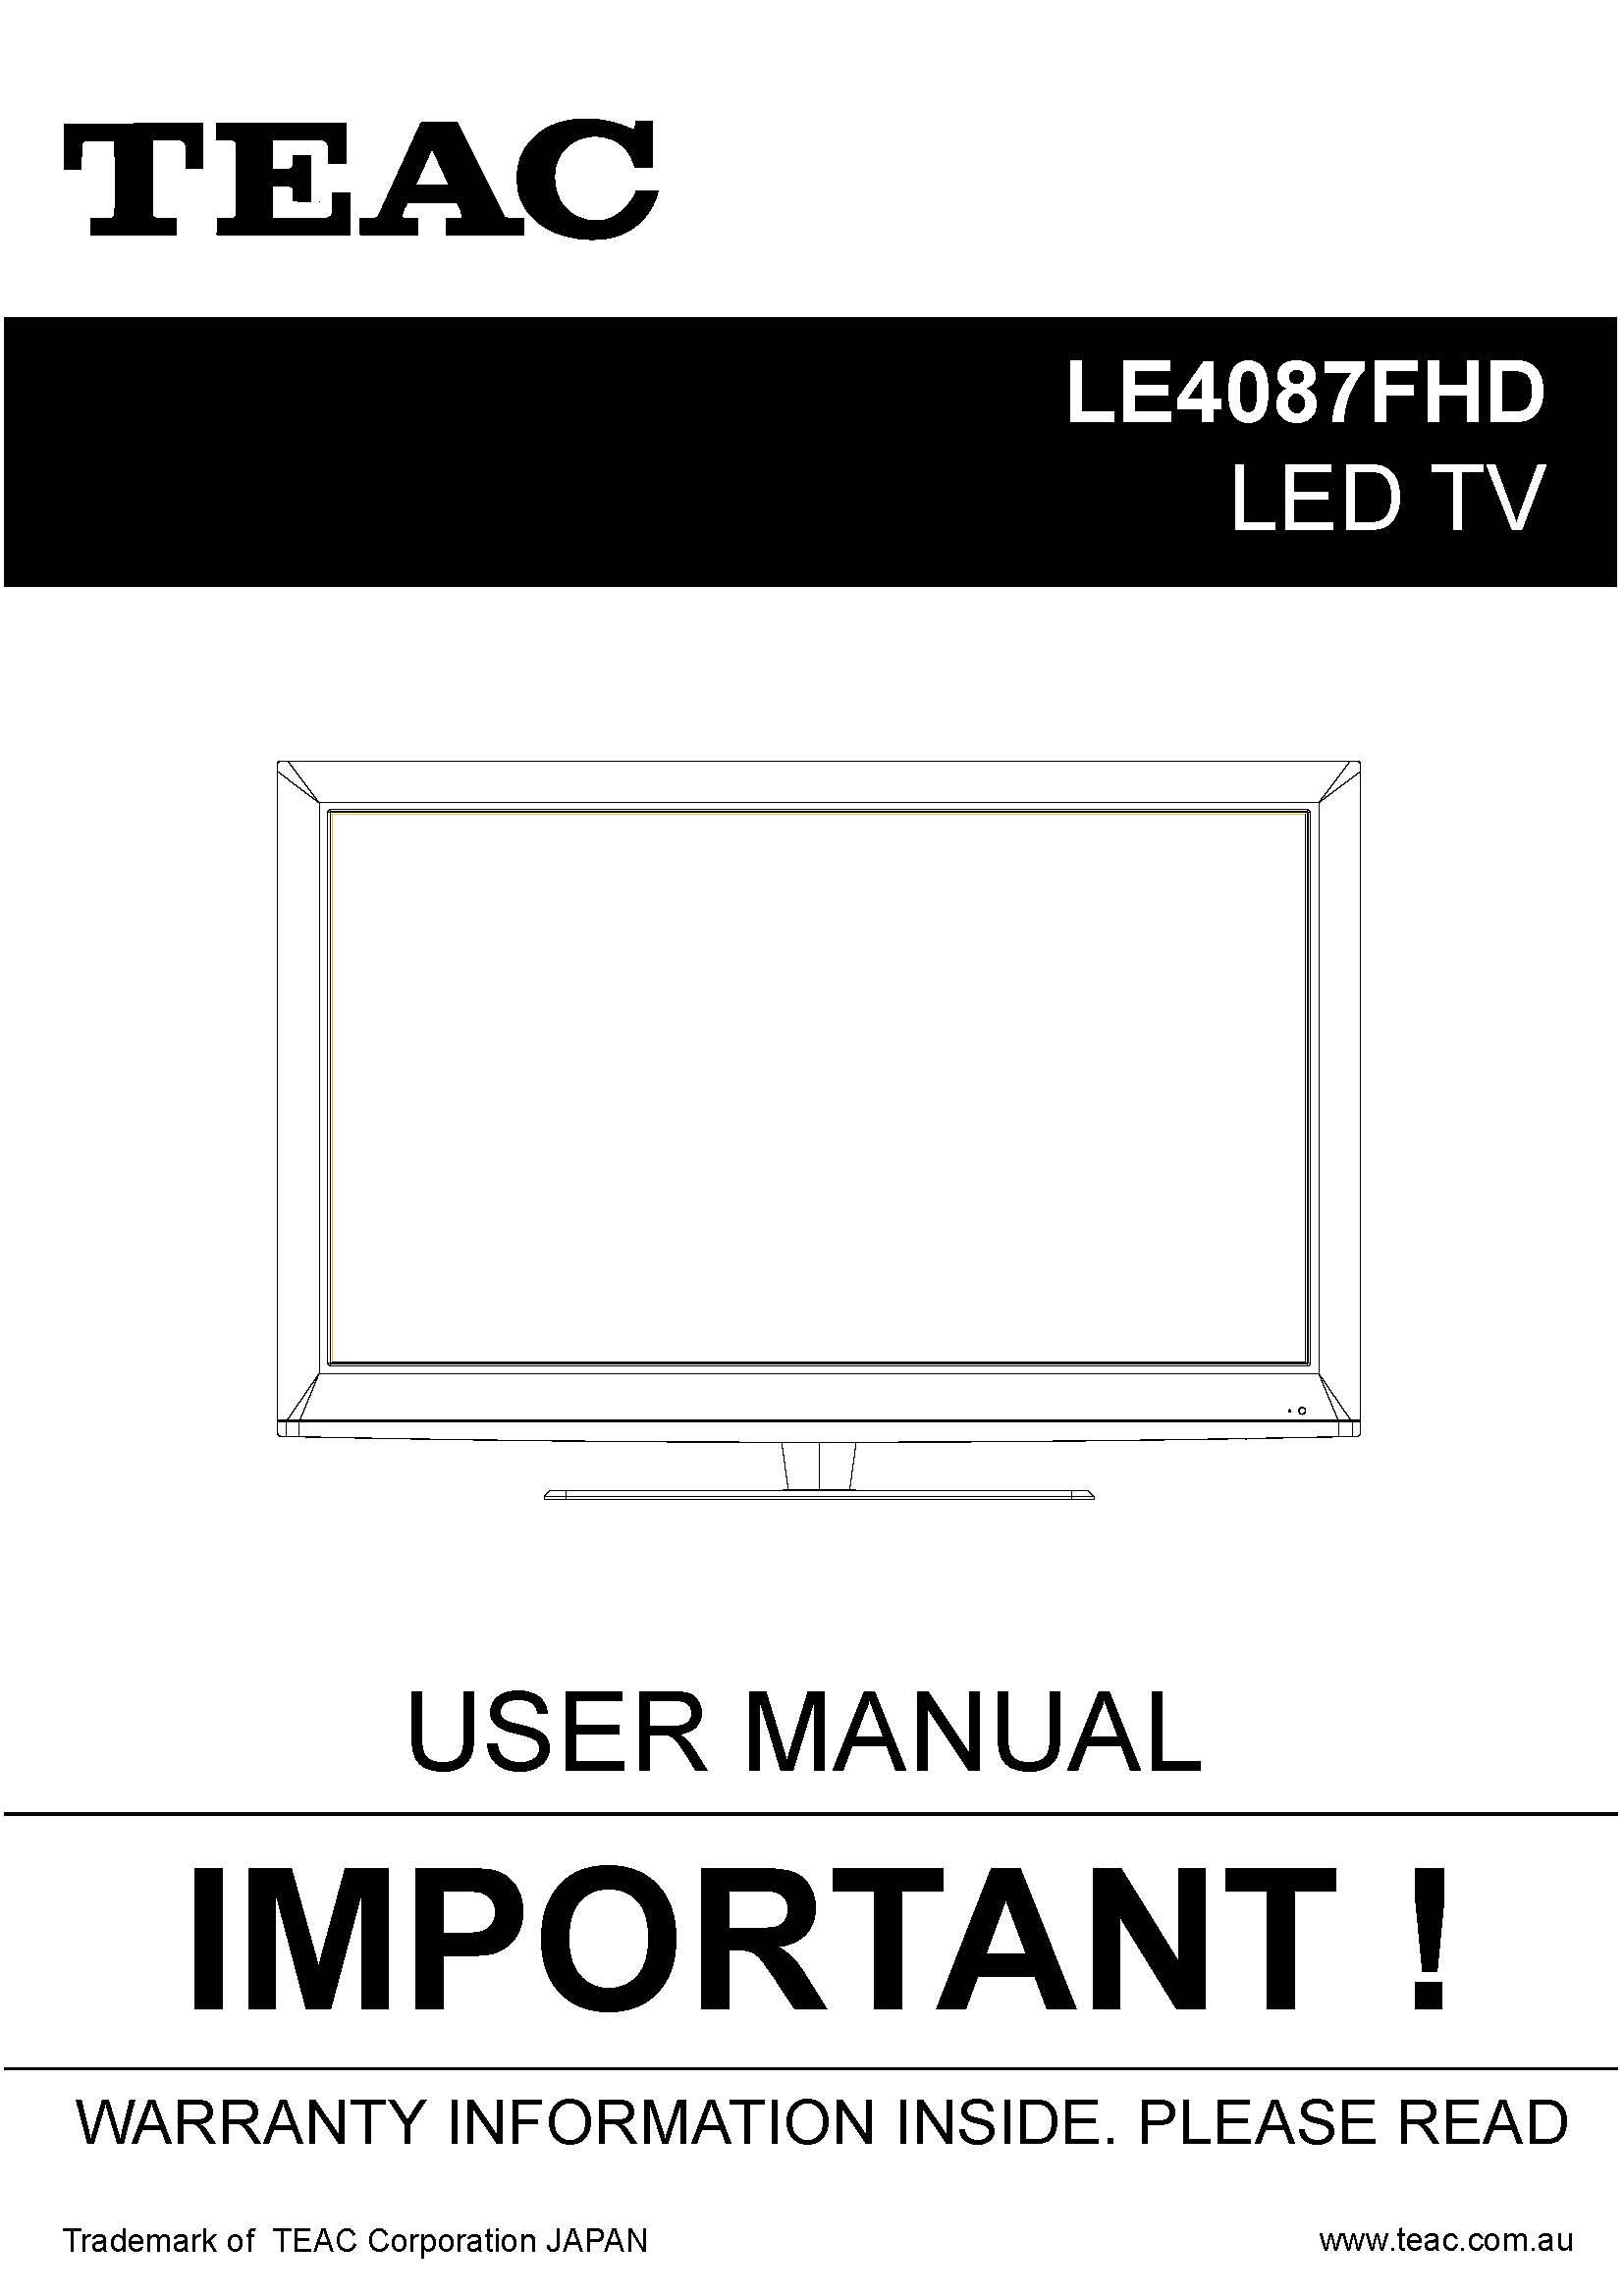 TEAC LE4087FHD User Manual